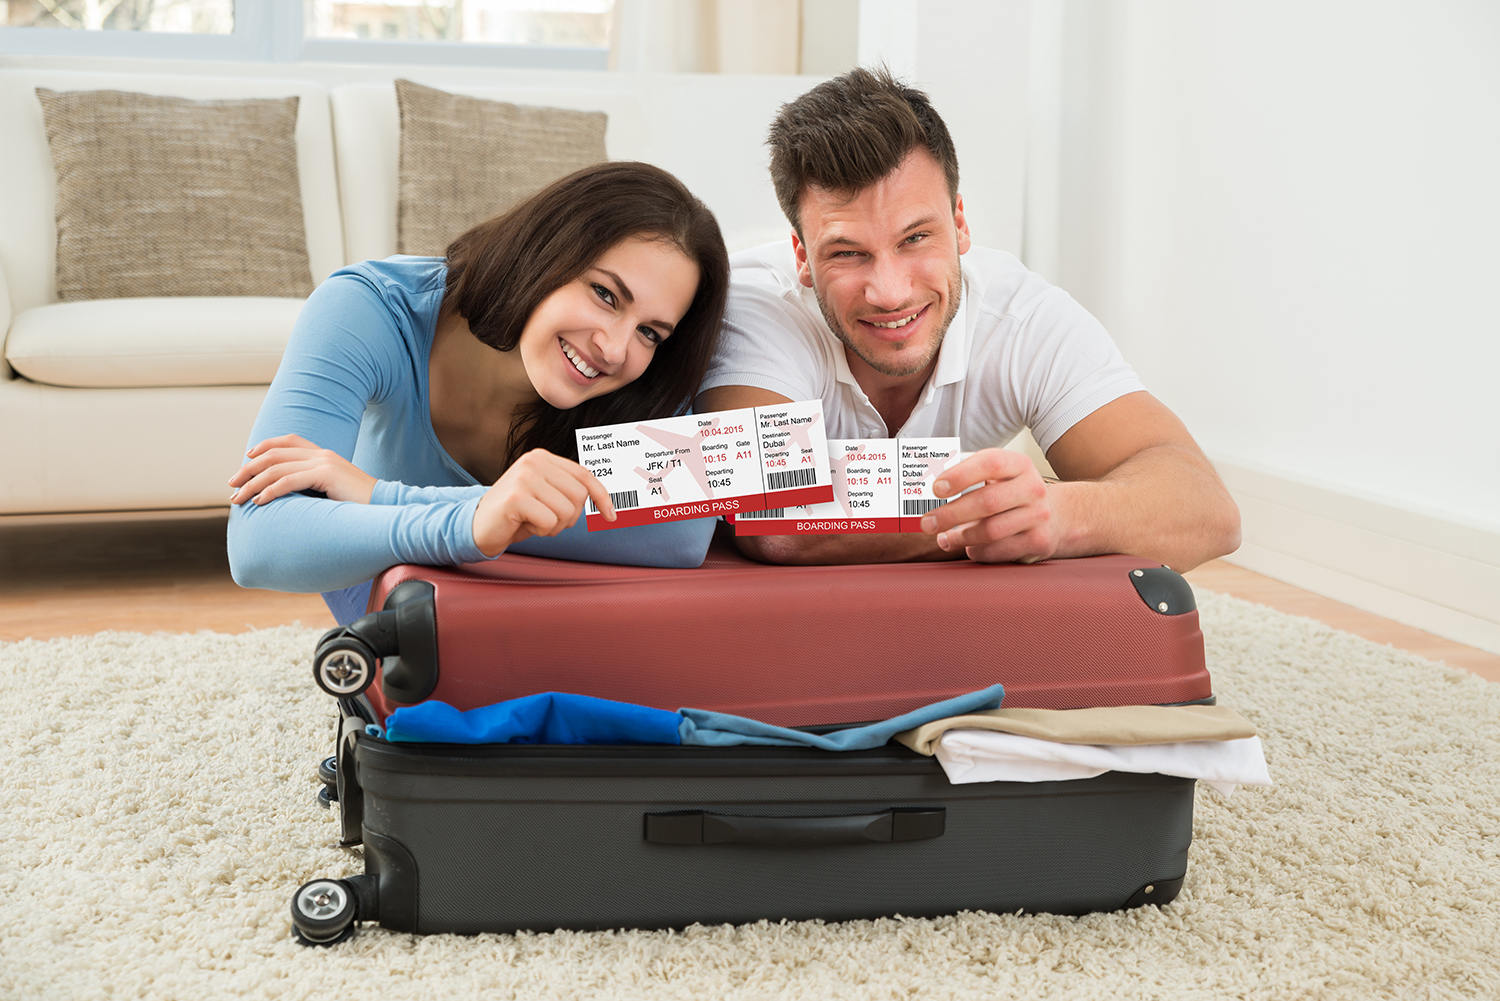 Portrait Of Happy Young Couple Packing Luggage Showing Boarding Pass